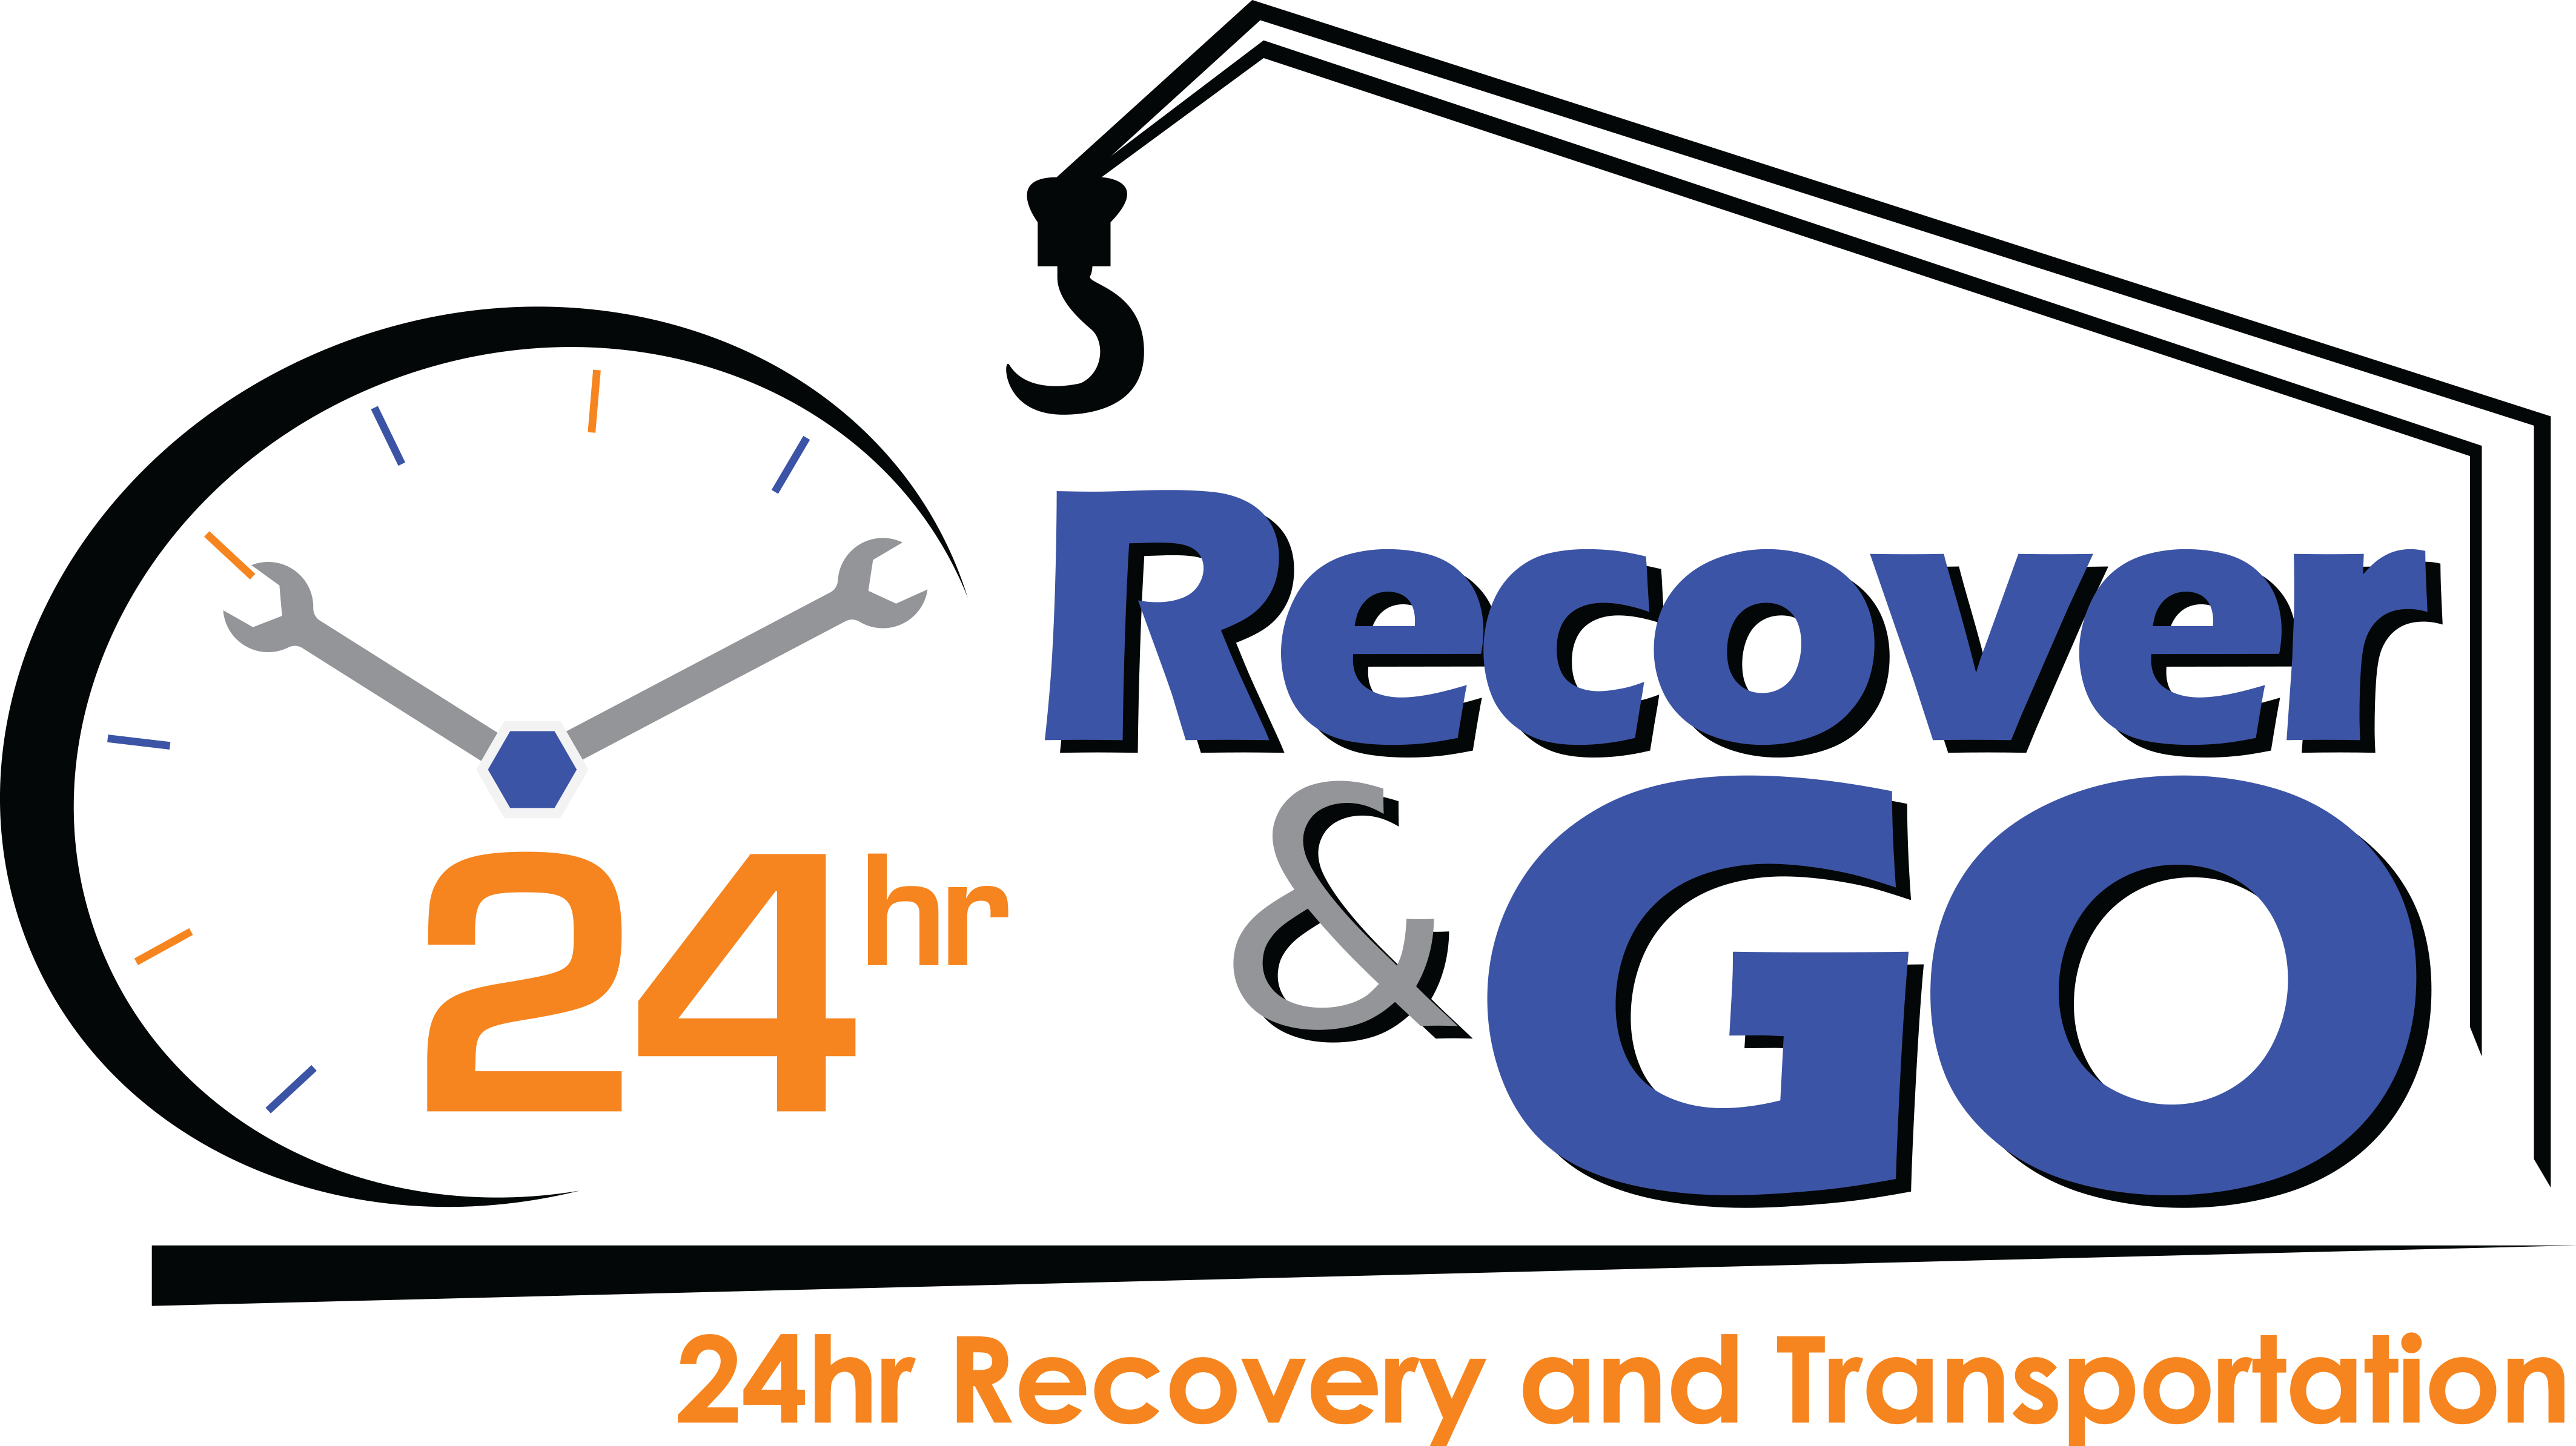 Recover & Go